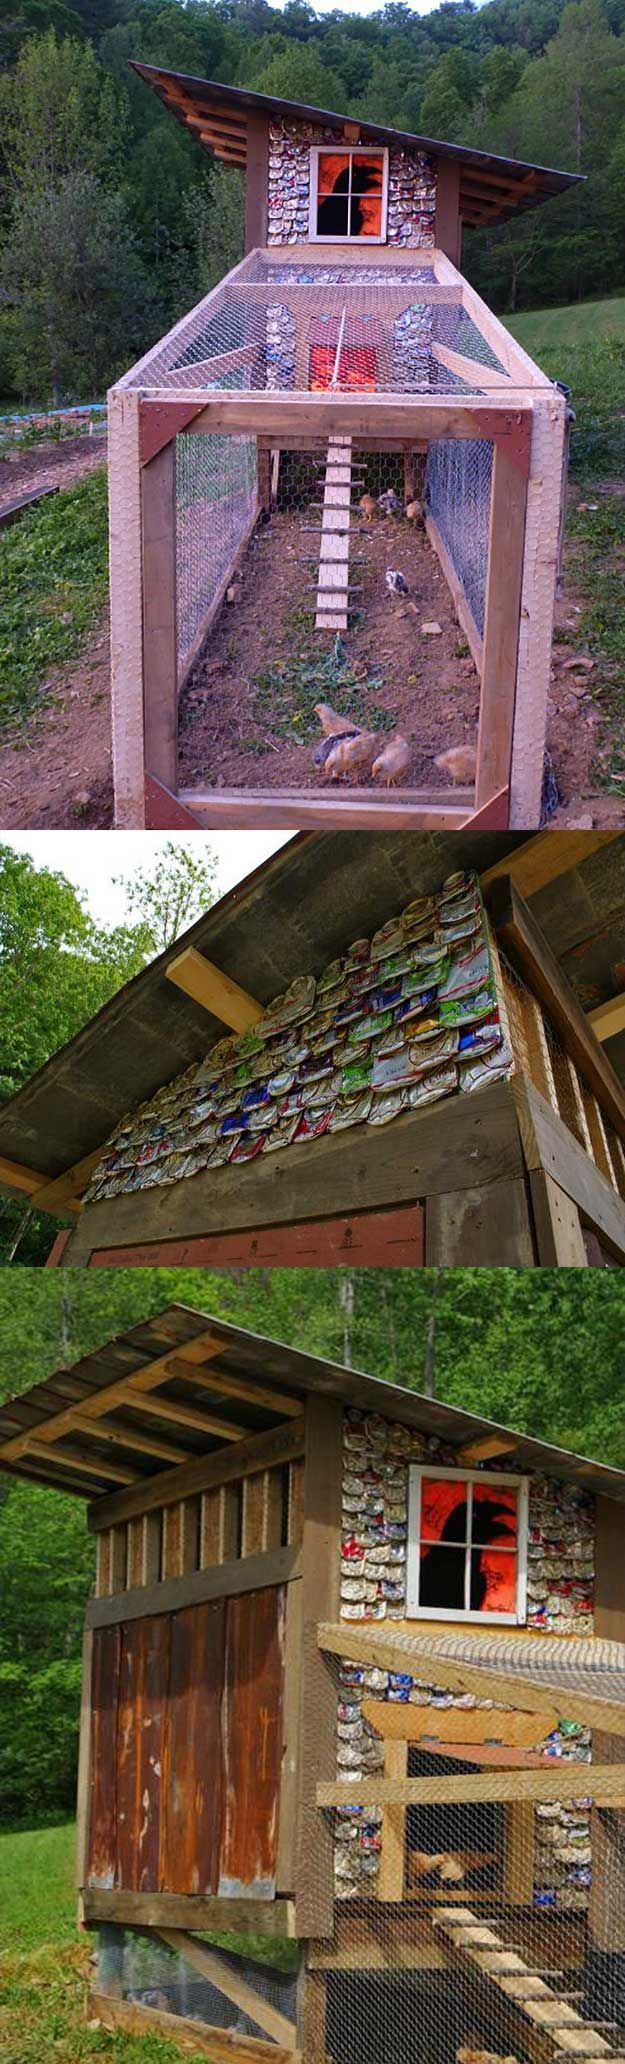 Chicken Coop idea with beer can shingles | 21 Awesome Chicken Coop Designs and Ideas | chicken coops, chicken coop designs, chicken coop ideas, building a chicken coop, diy chicken coop, backyard chicken coop, portable chicken coop, how to make a chicken coop, cheap chicken coop, small chicken coop, pallet chicken coop, urban chicken coop, a frame chicken coop